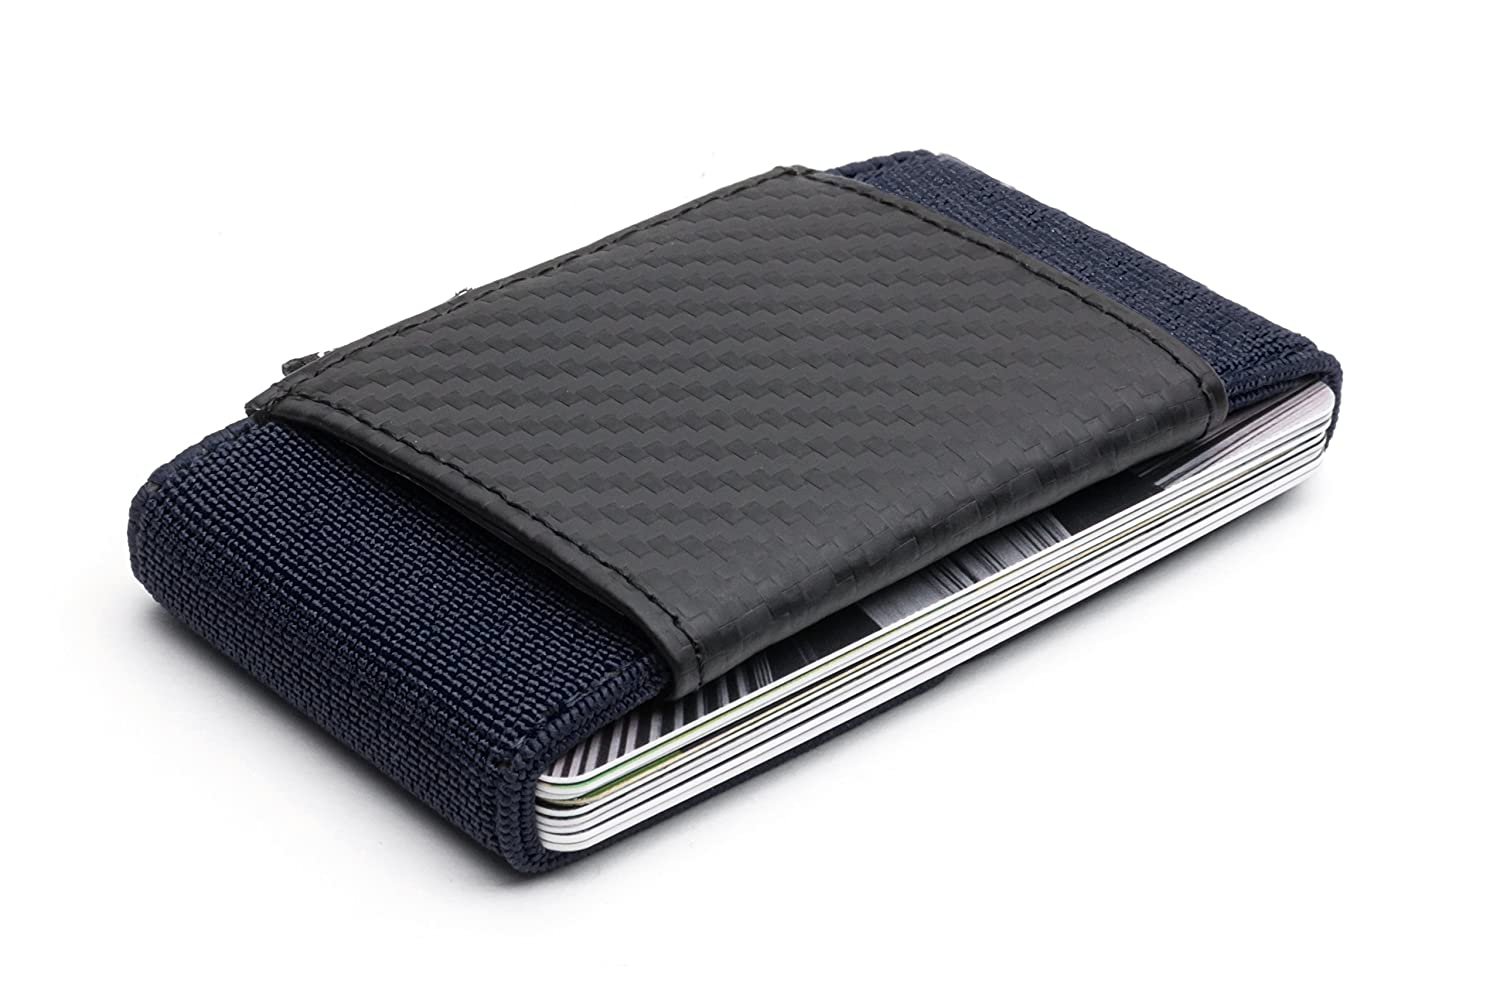 Amazon.com: POCKETO CARBON FIBER / ELASTIC Wallet, Minimalist Design and Durable Card Holder, Perfect Card Case for Sport and Travel (Navy): Clothing